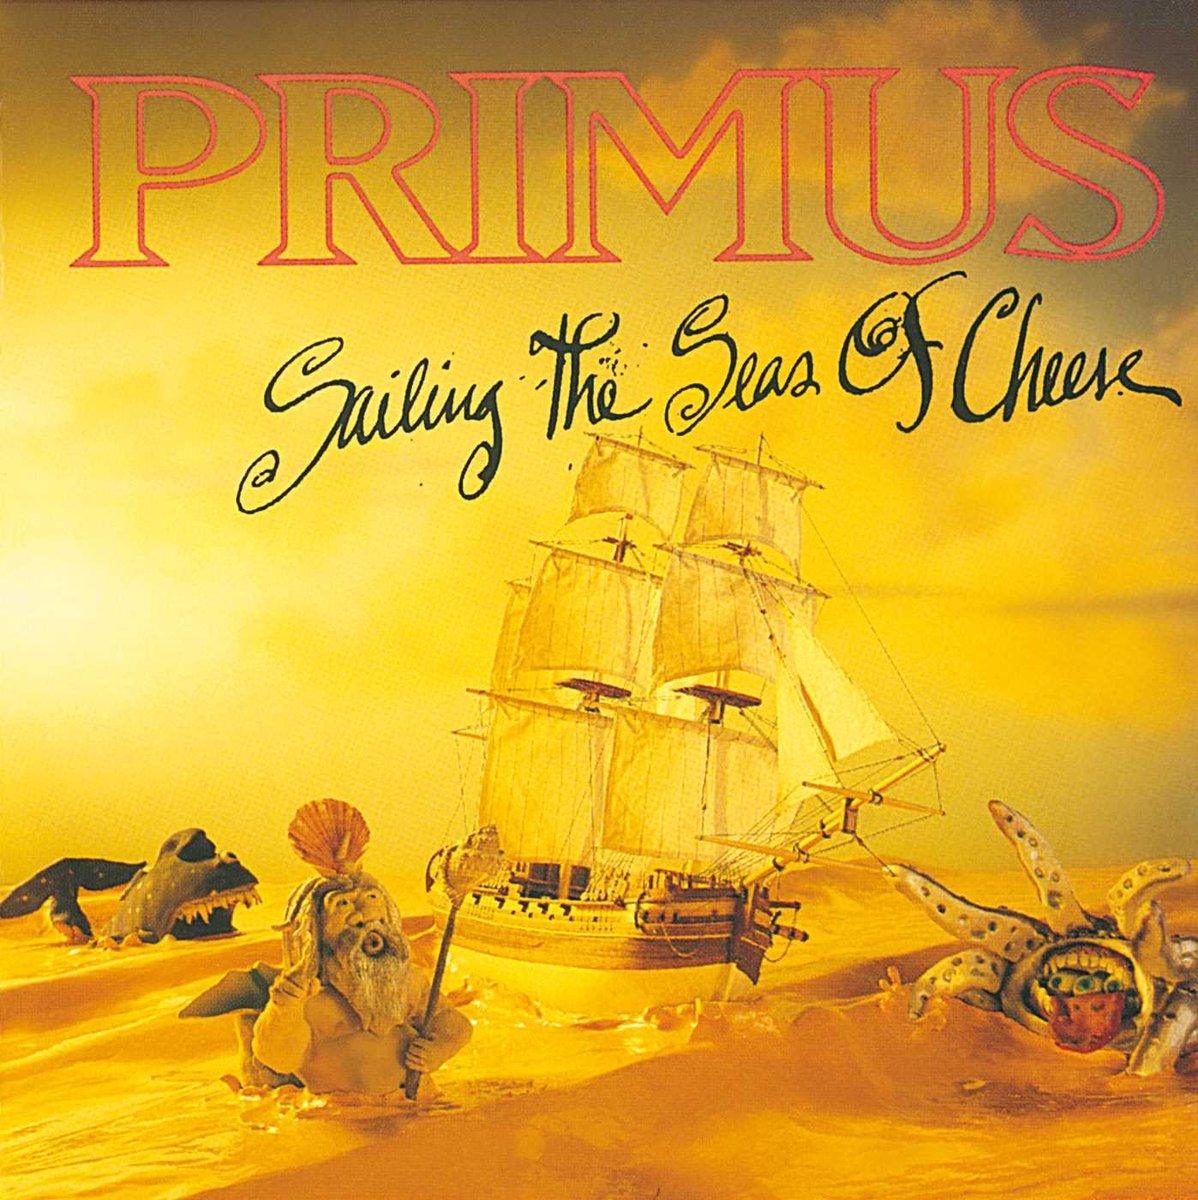 "#NowPlaying PRIMUS ""Sailing the Seas of Cheese"" full-length album on CD from 1991 on Interscope Records! Excellent #AltMetal from California! ""Jerry was a Race Car Driver"" is such a great track! Les Claypool is one of the all-time great bass guitarists! #ProgMetal #MusicIsLife 🤘 https://t.co/LQA8LnMTDM"